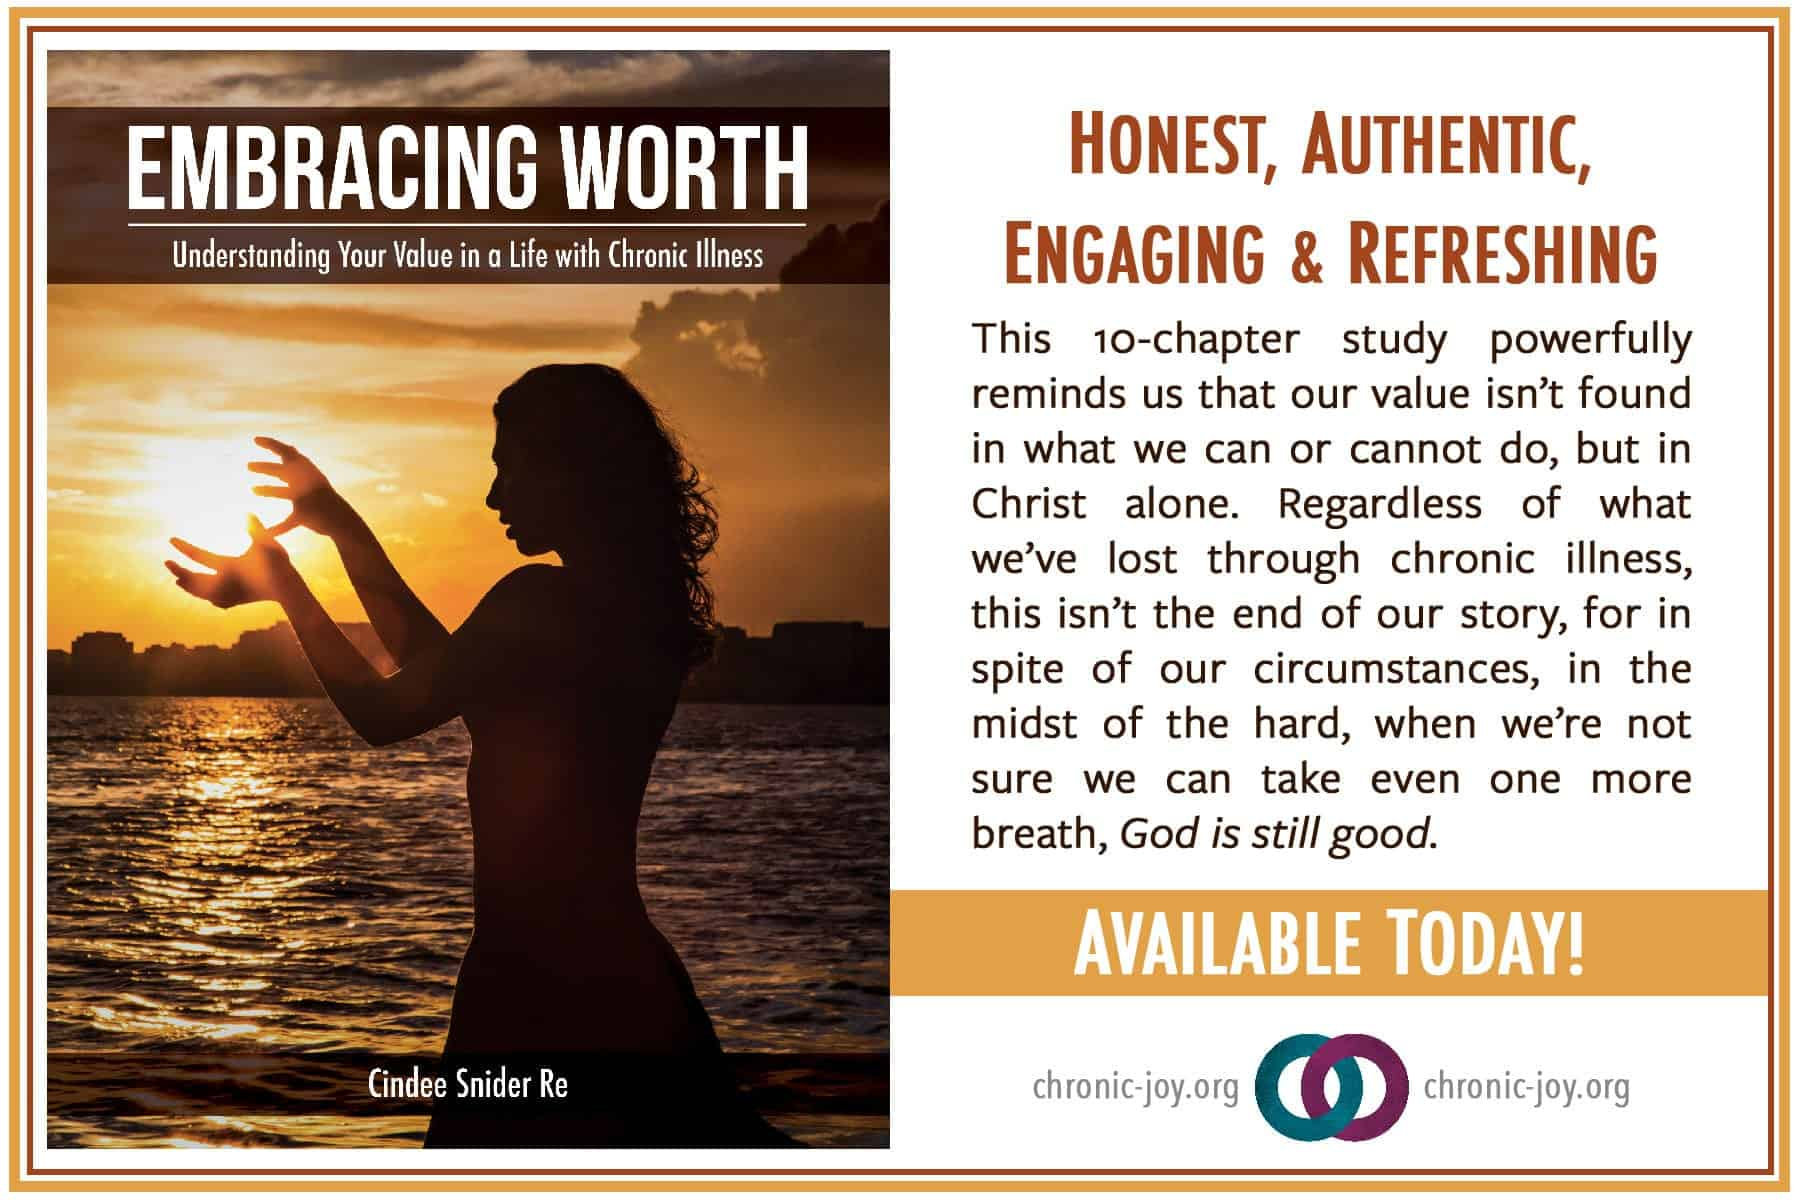 Welcoming Embracing Worth! | Invitation to Community